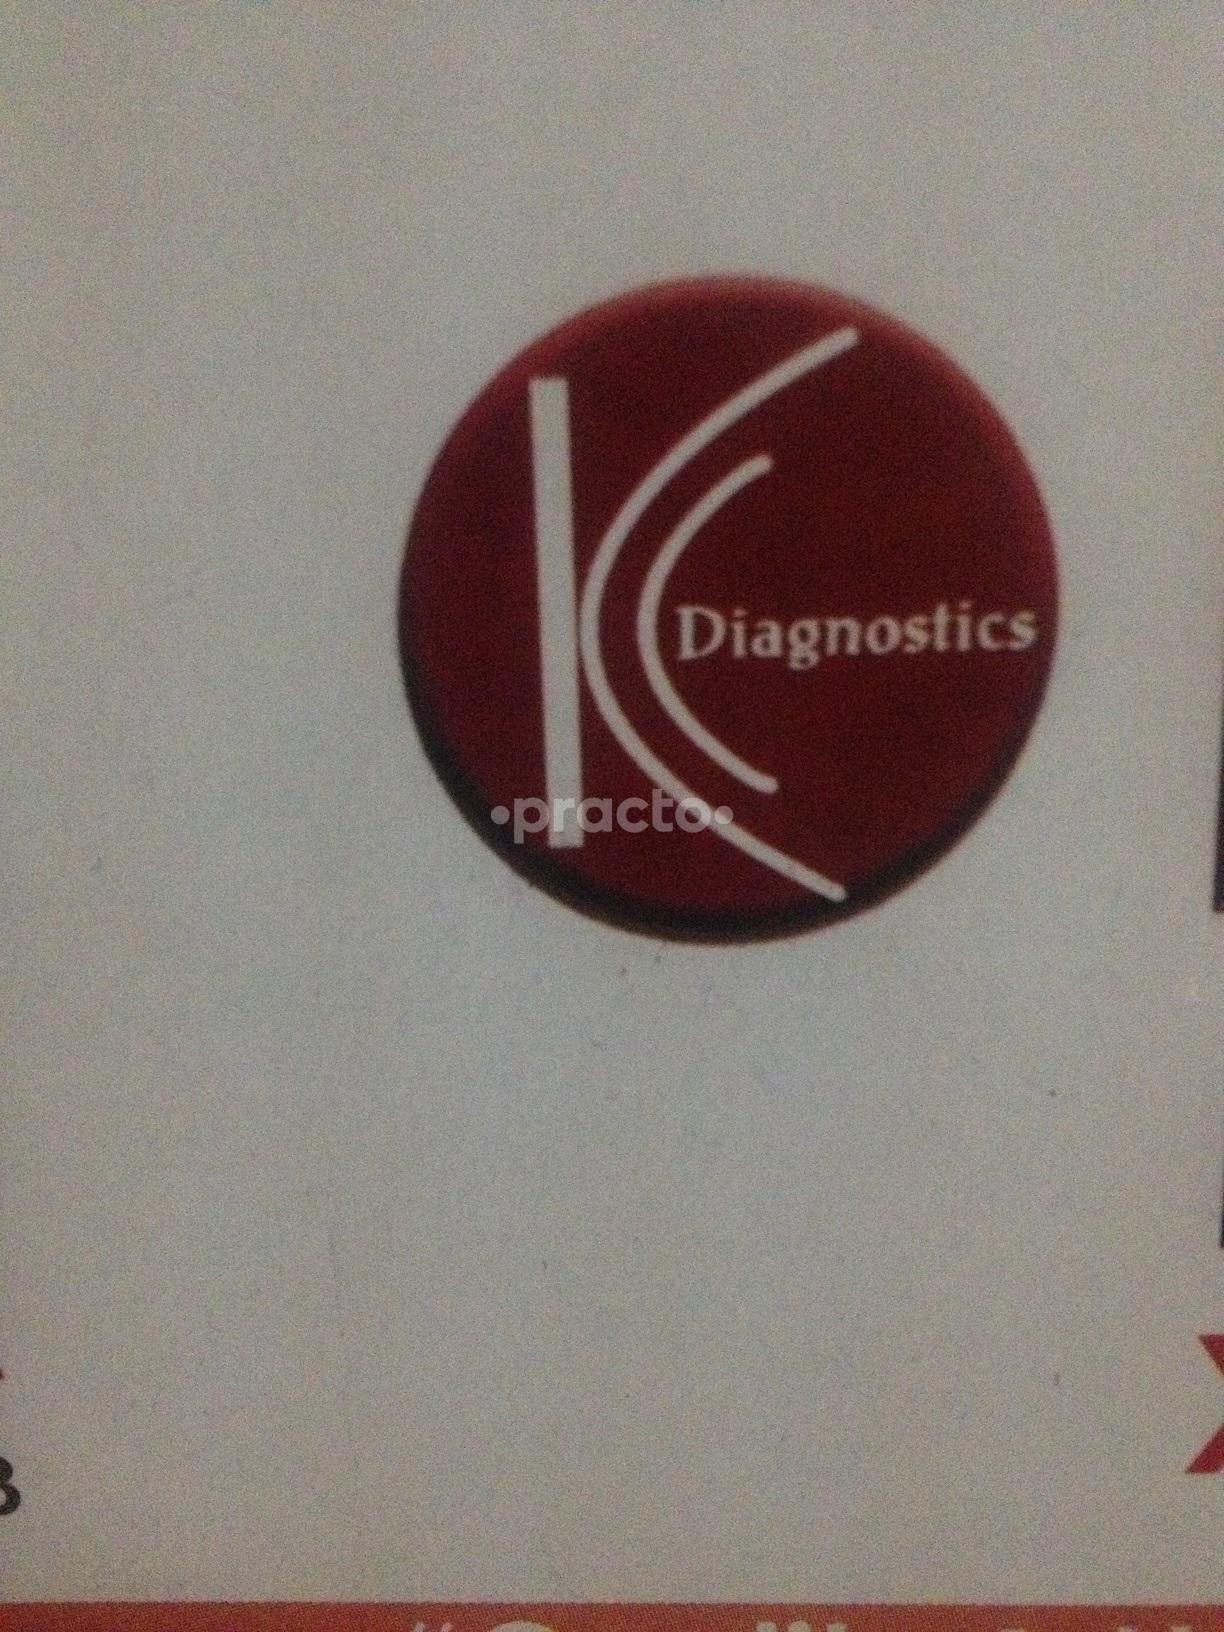 KK Dental Clinics